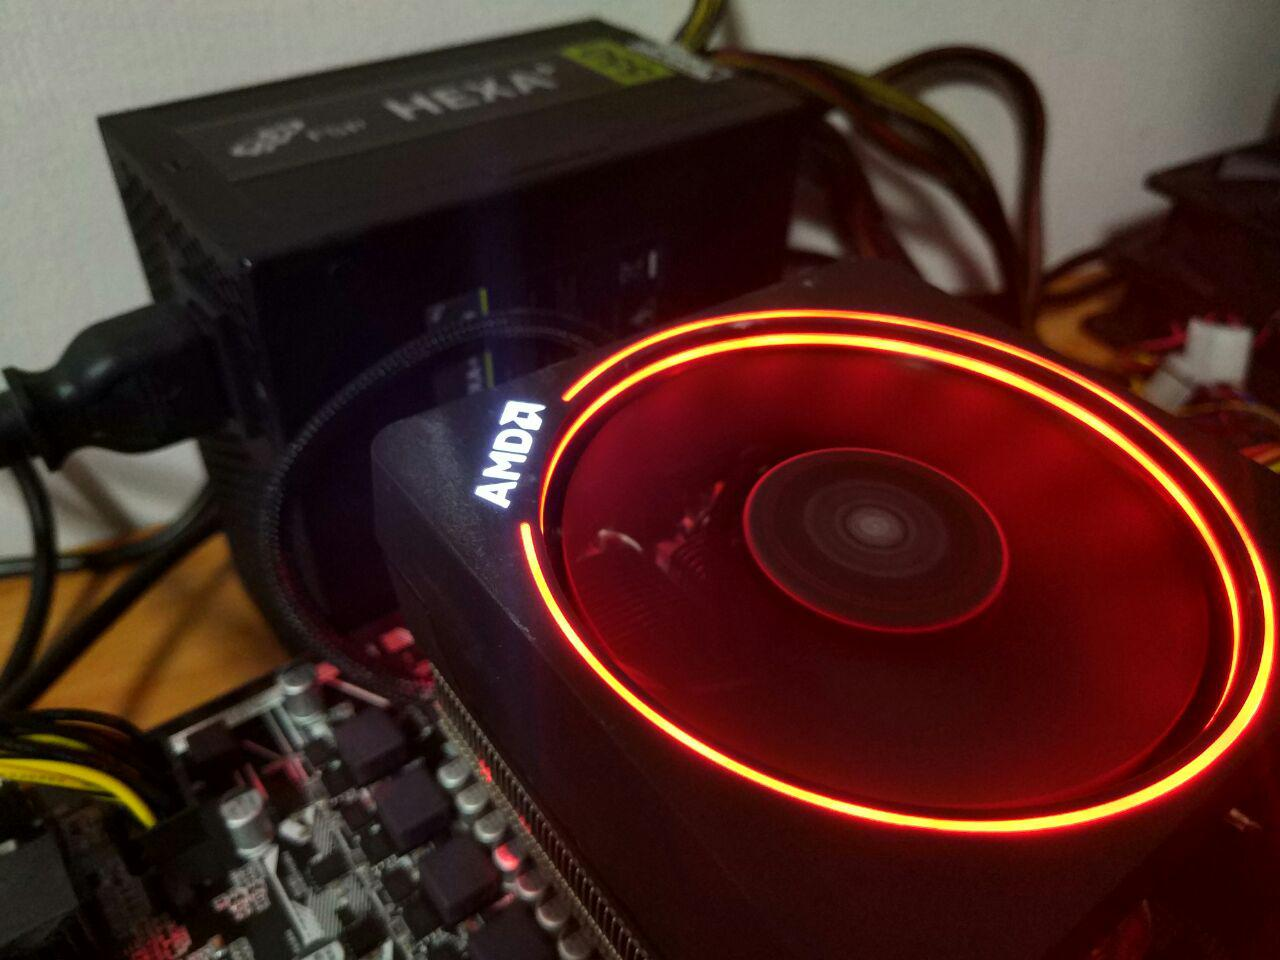 Ryzen 5 1600x Overclocked At 42ghzair Outperforms 7 1700 On Amd R5 1500x When We First Tested The Were Simply Surprised Its Rather High Overclocking Headroom As Compared To Other Models Had